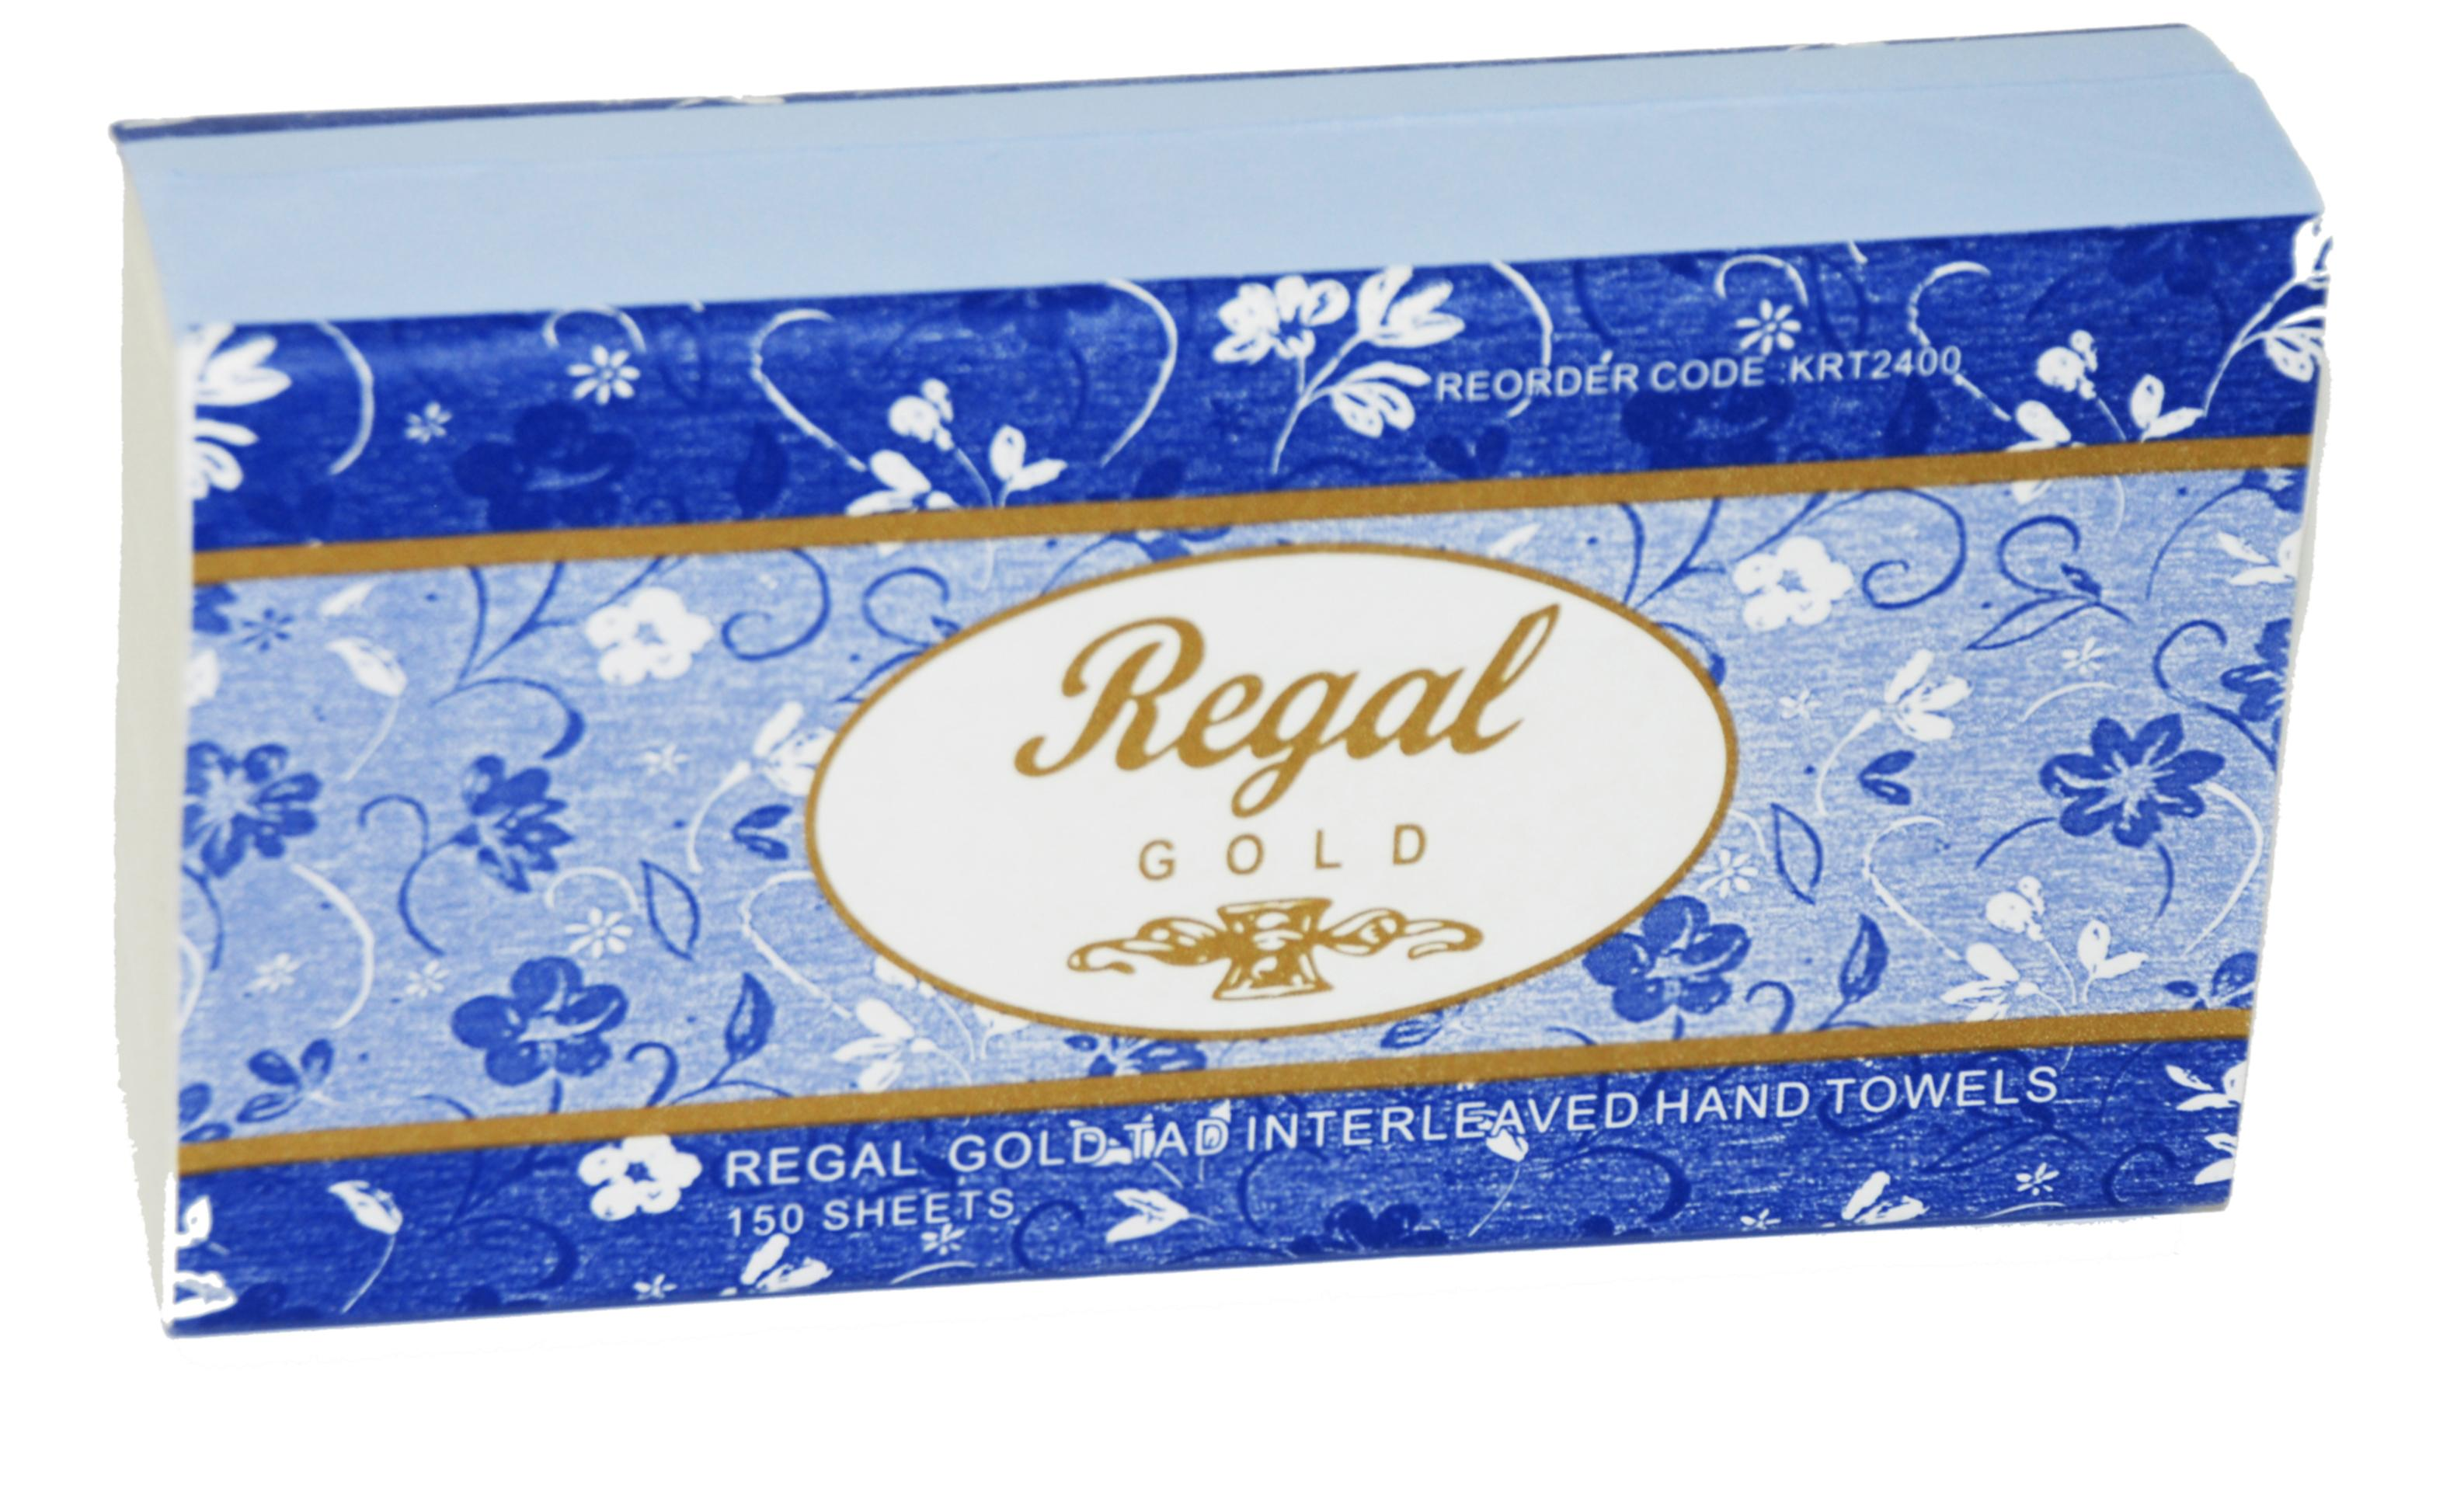 Regal Gold TAD Interleaved Hand Towel 150 sheet x 16 packs